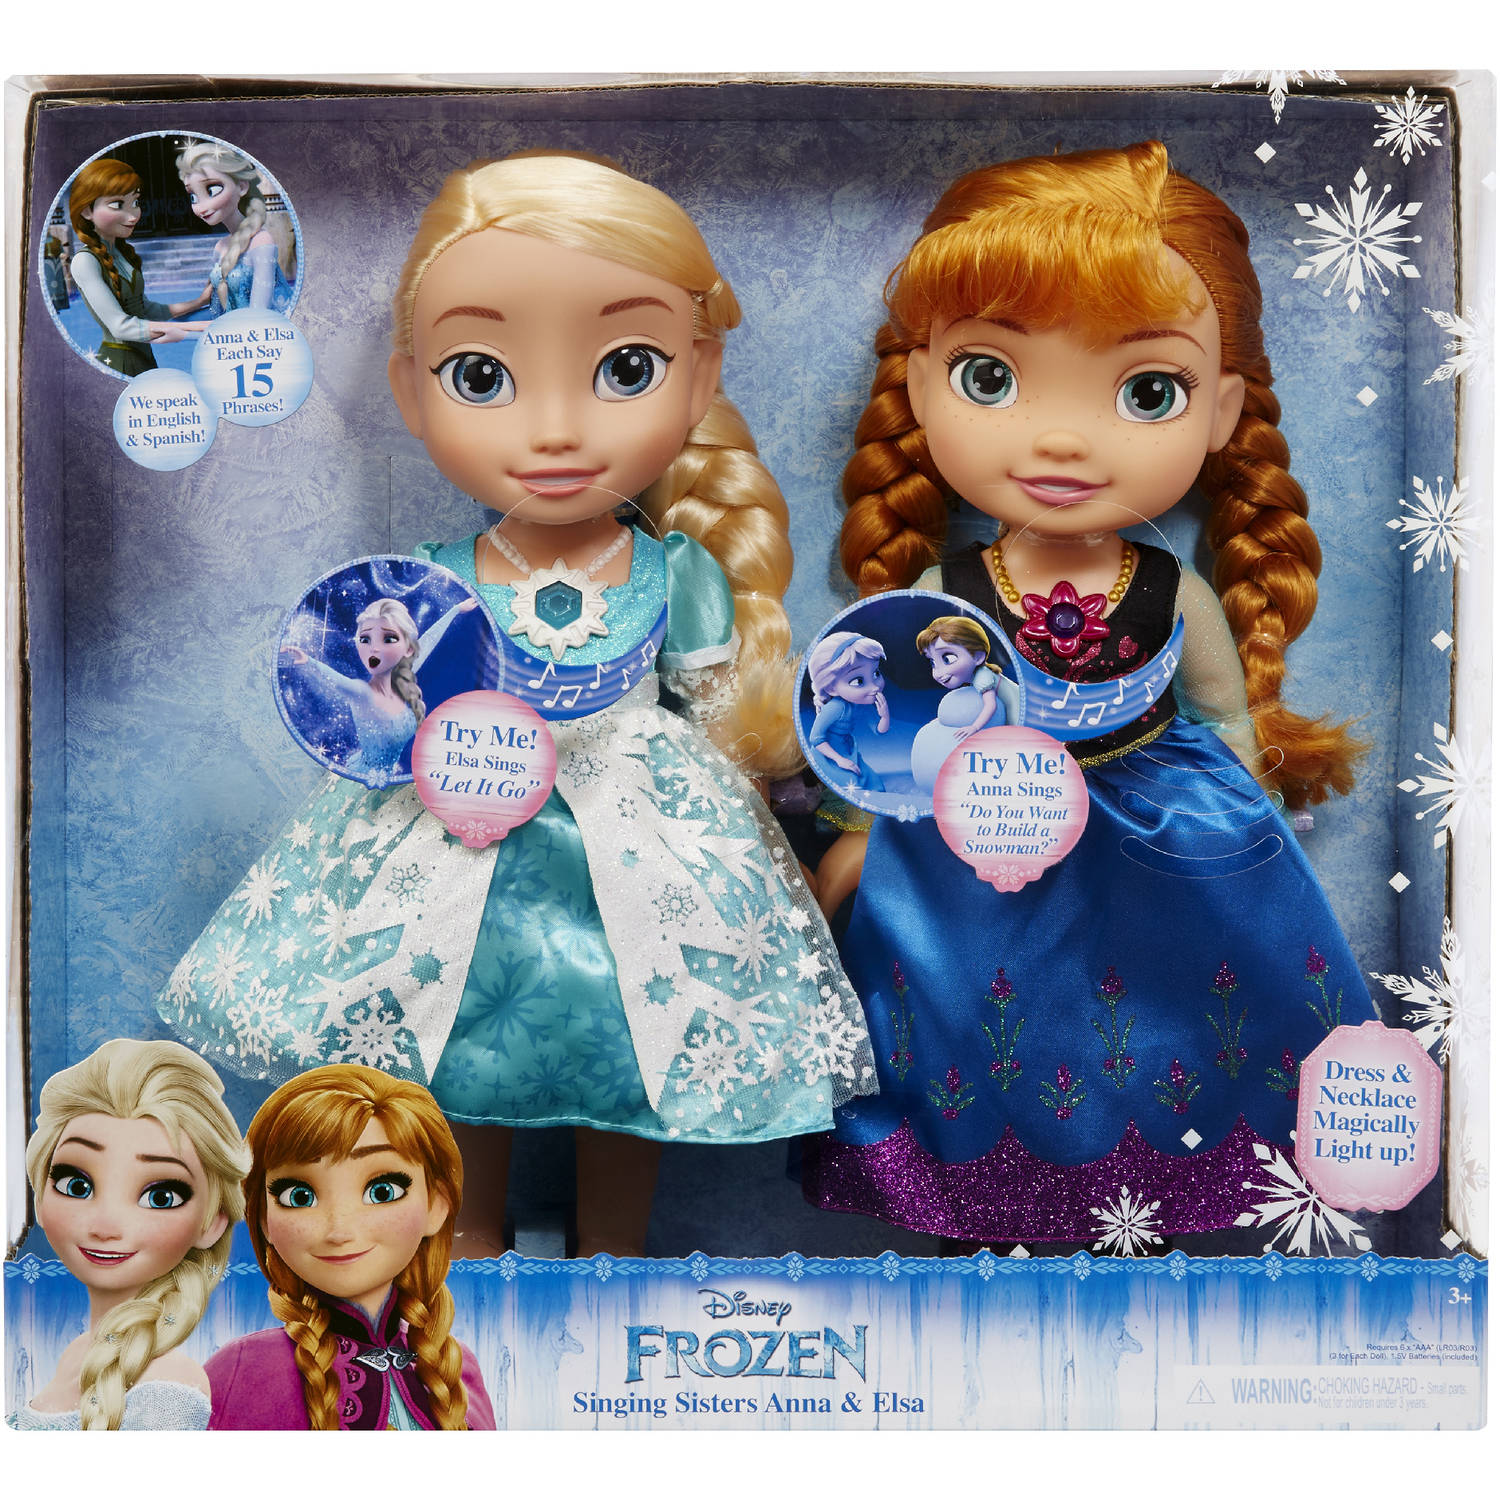 Disney Frozen Singing Sisters Elsa And Anna Dolls Exclusive Walmart Com Walmart Com